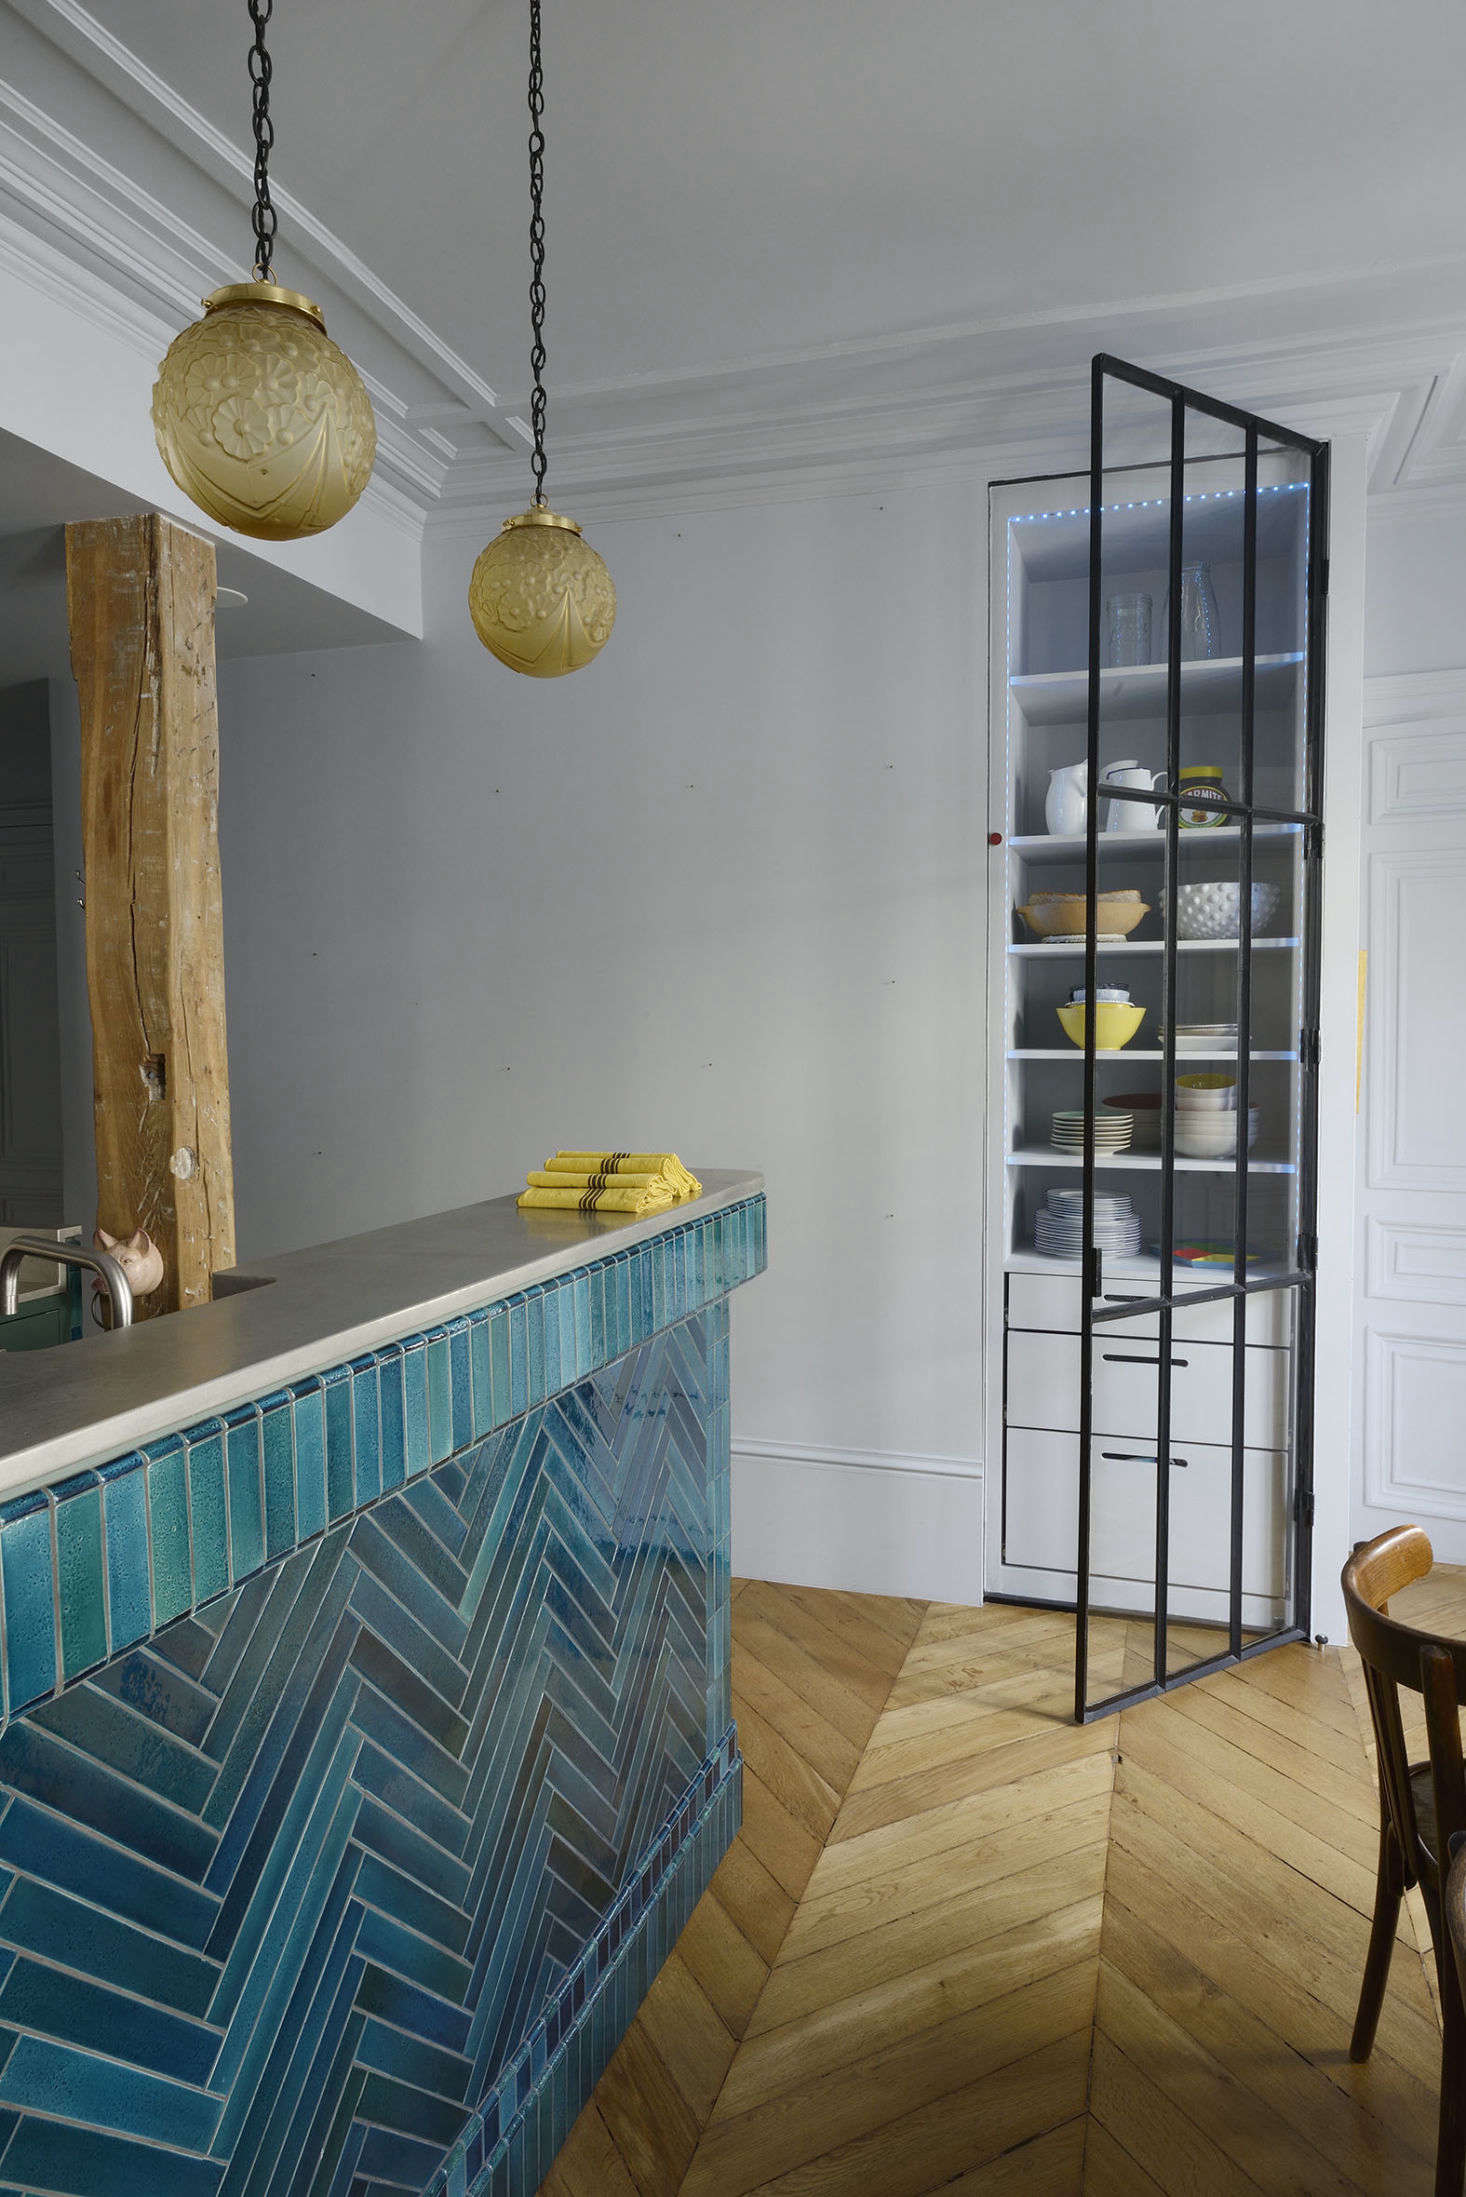 Ab0ve: A built-inn pantry with a glazed steel door stands on the other side of the kitchen bar. The clients bought the French glass hanging lights at a flea market.